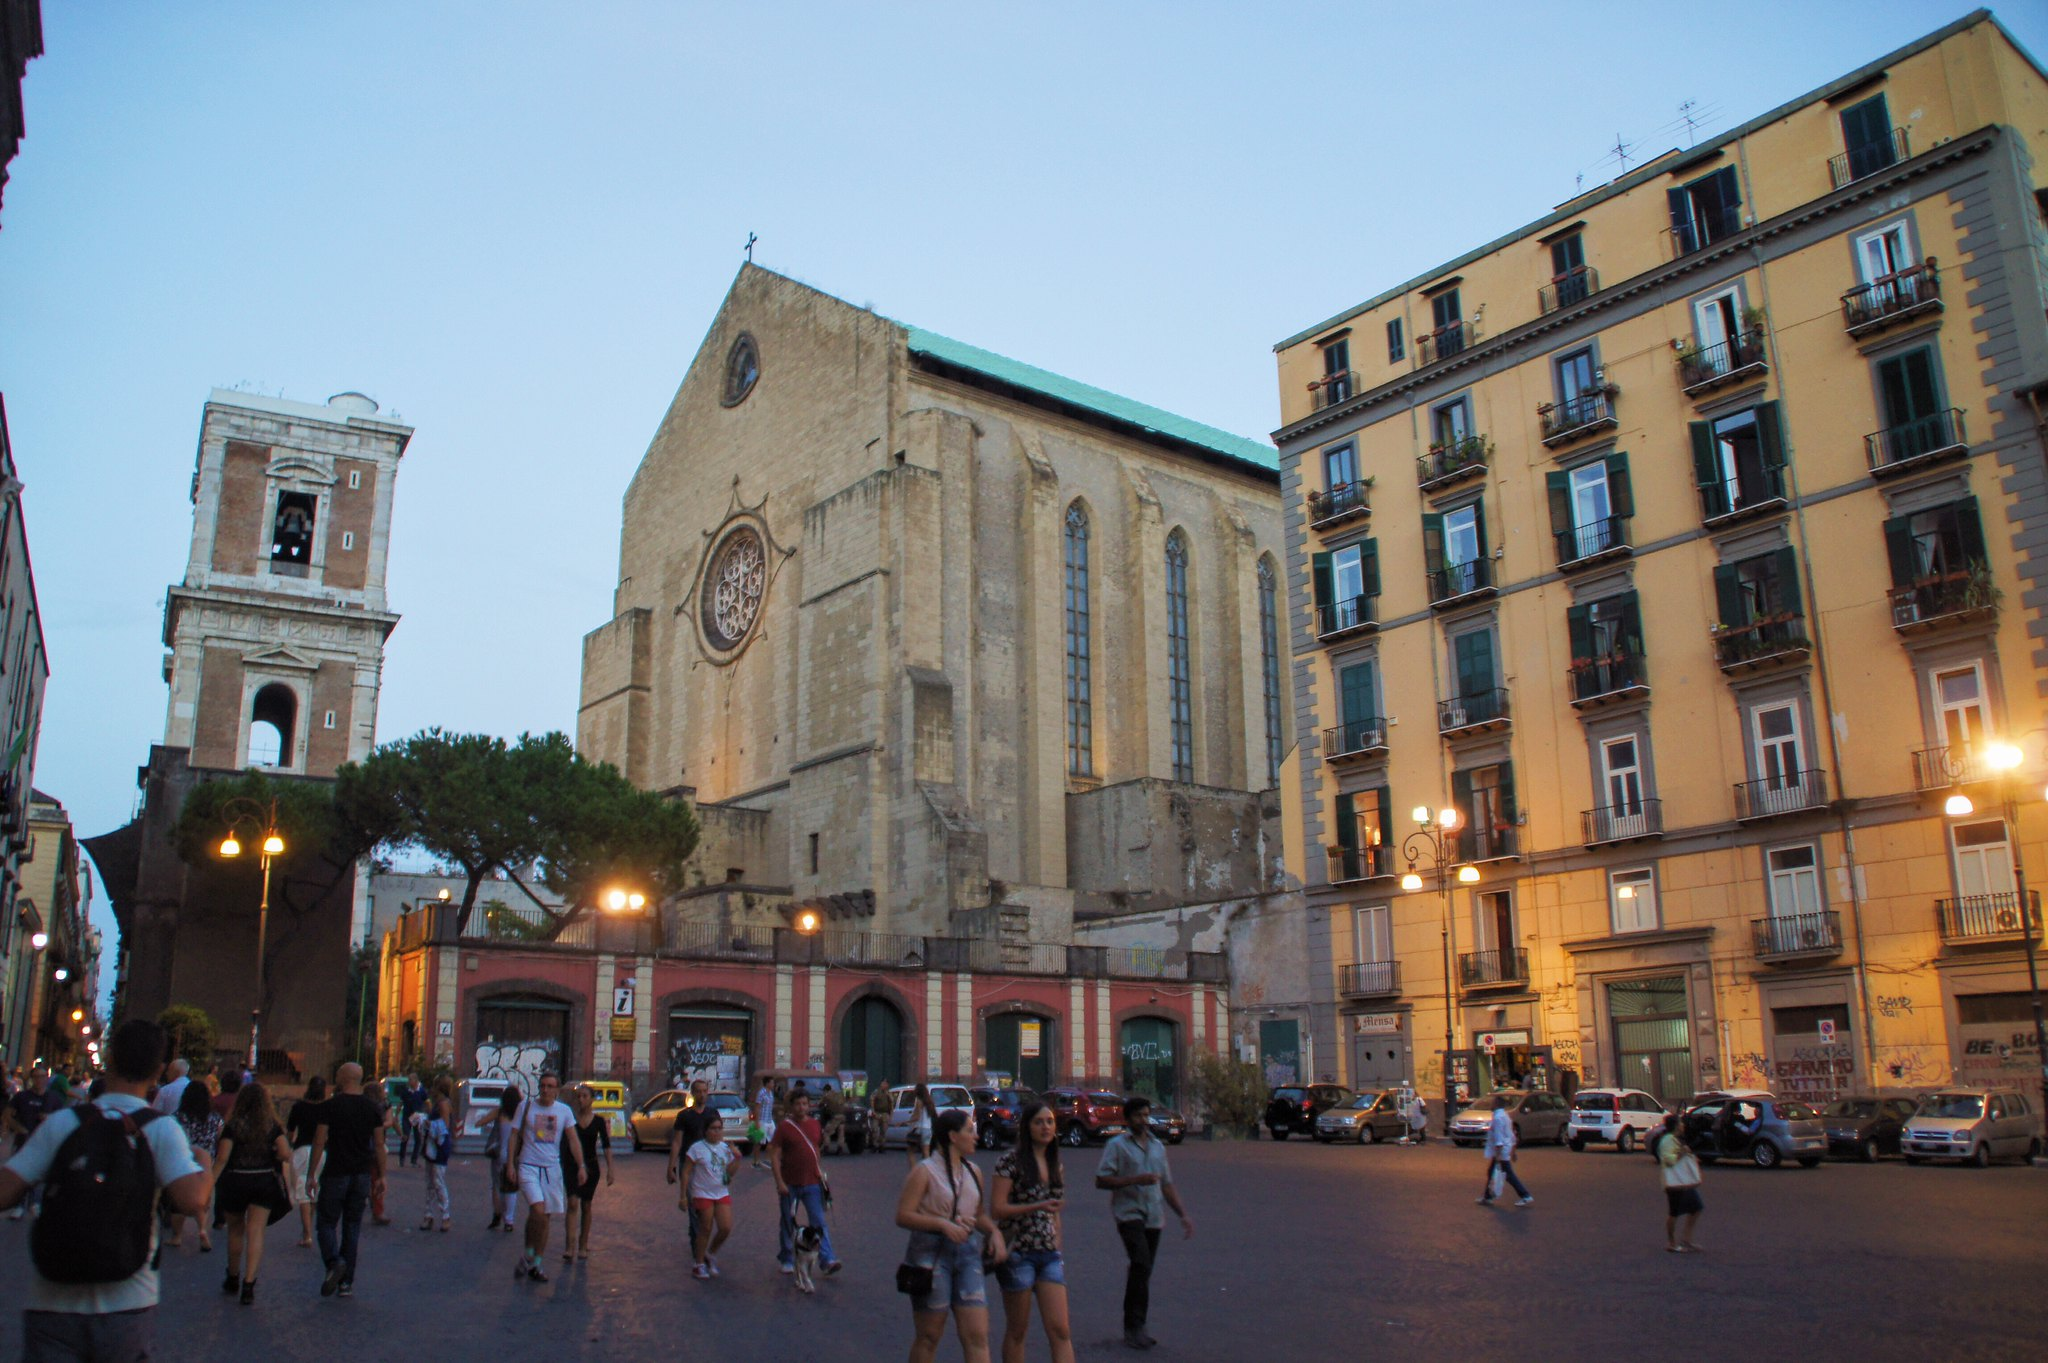 Gesu Nuovo (New Jesus) square and Santa Chiara church, Naples